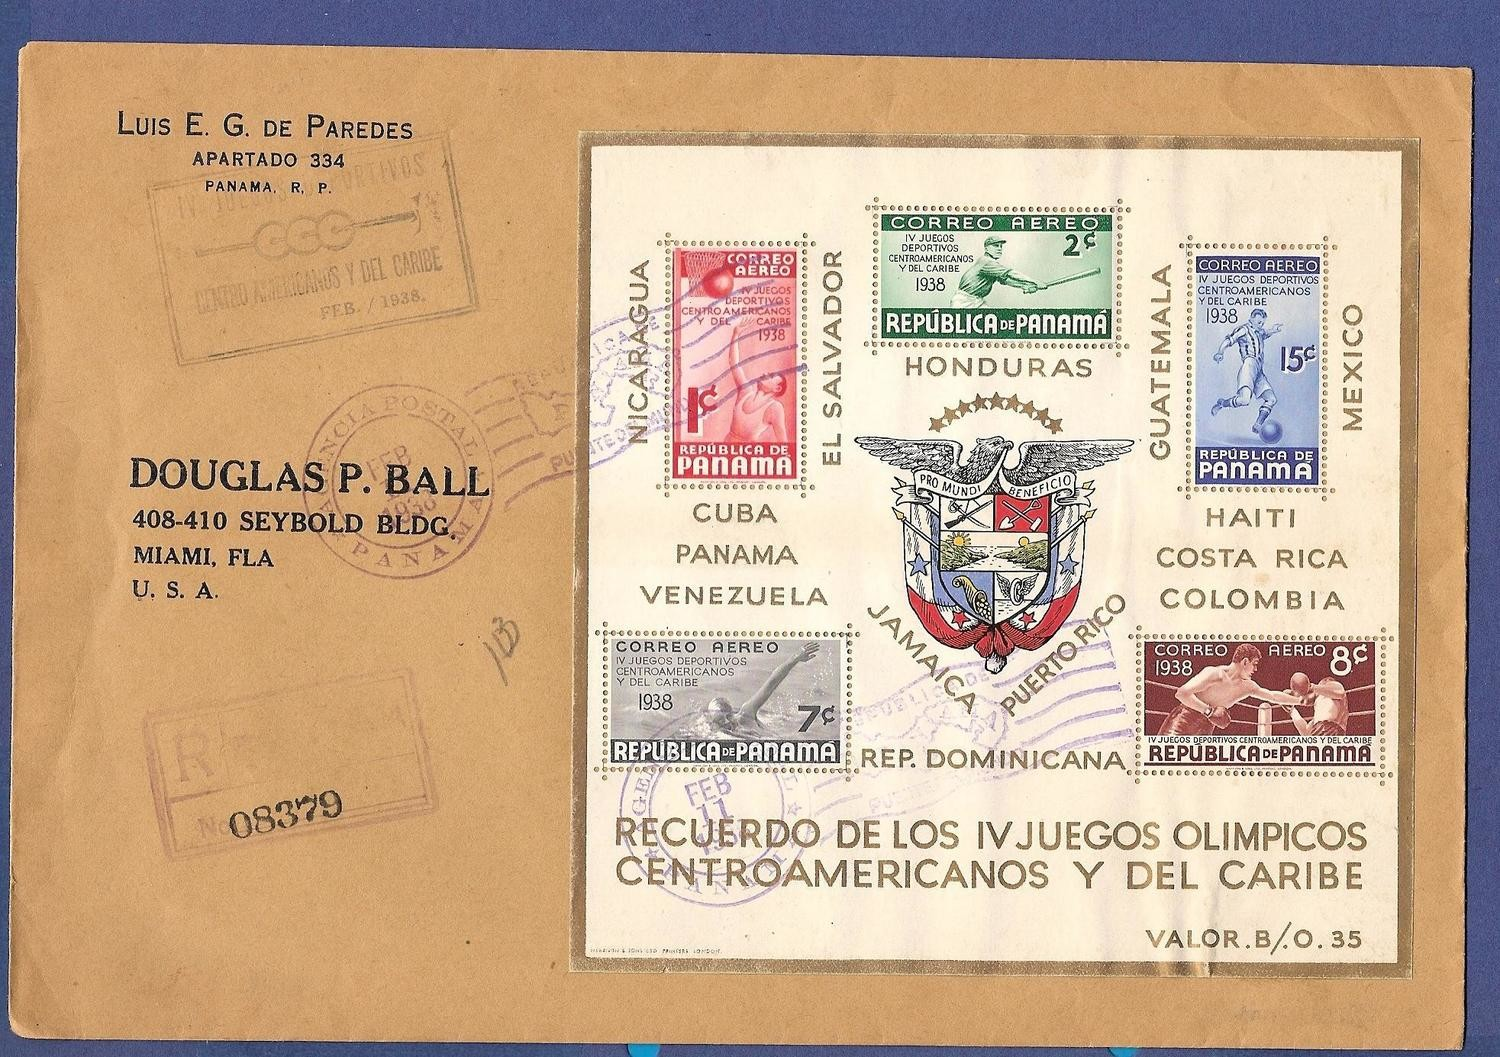 PANAMA R FDC 1938 Centro American Olympic games